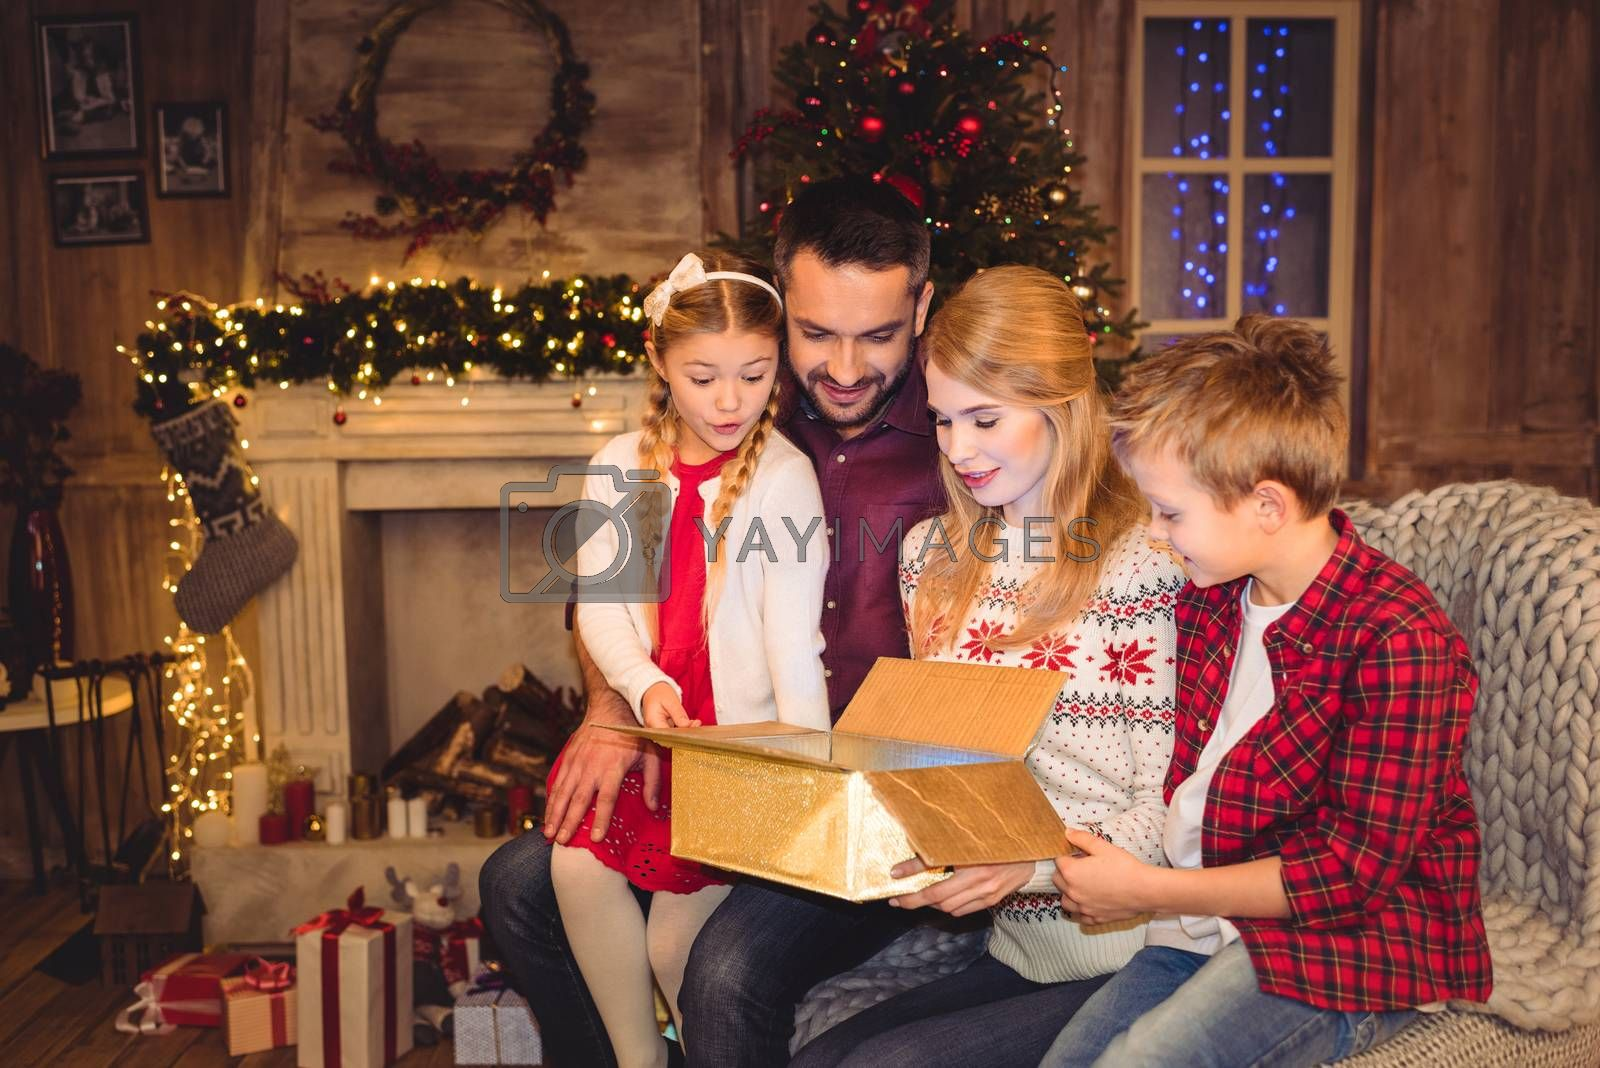 Happy family sitting together and opening gift box